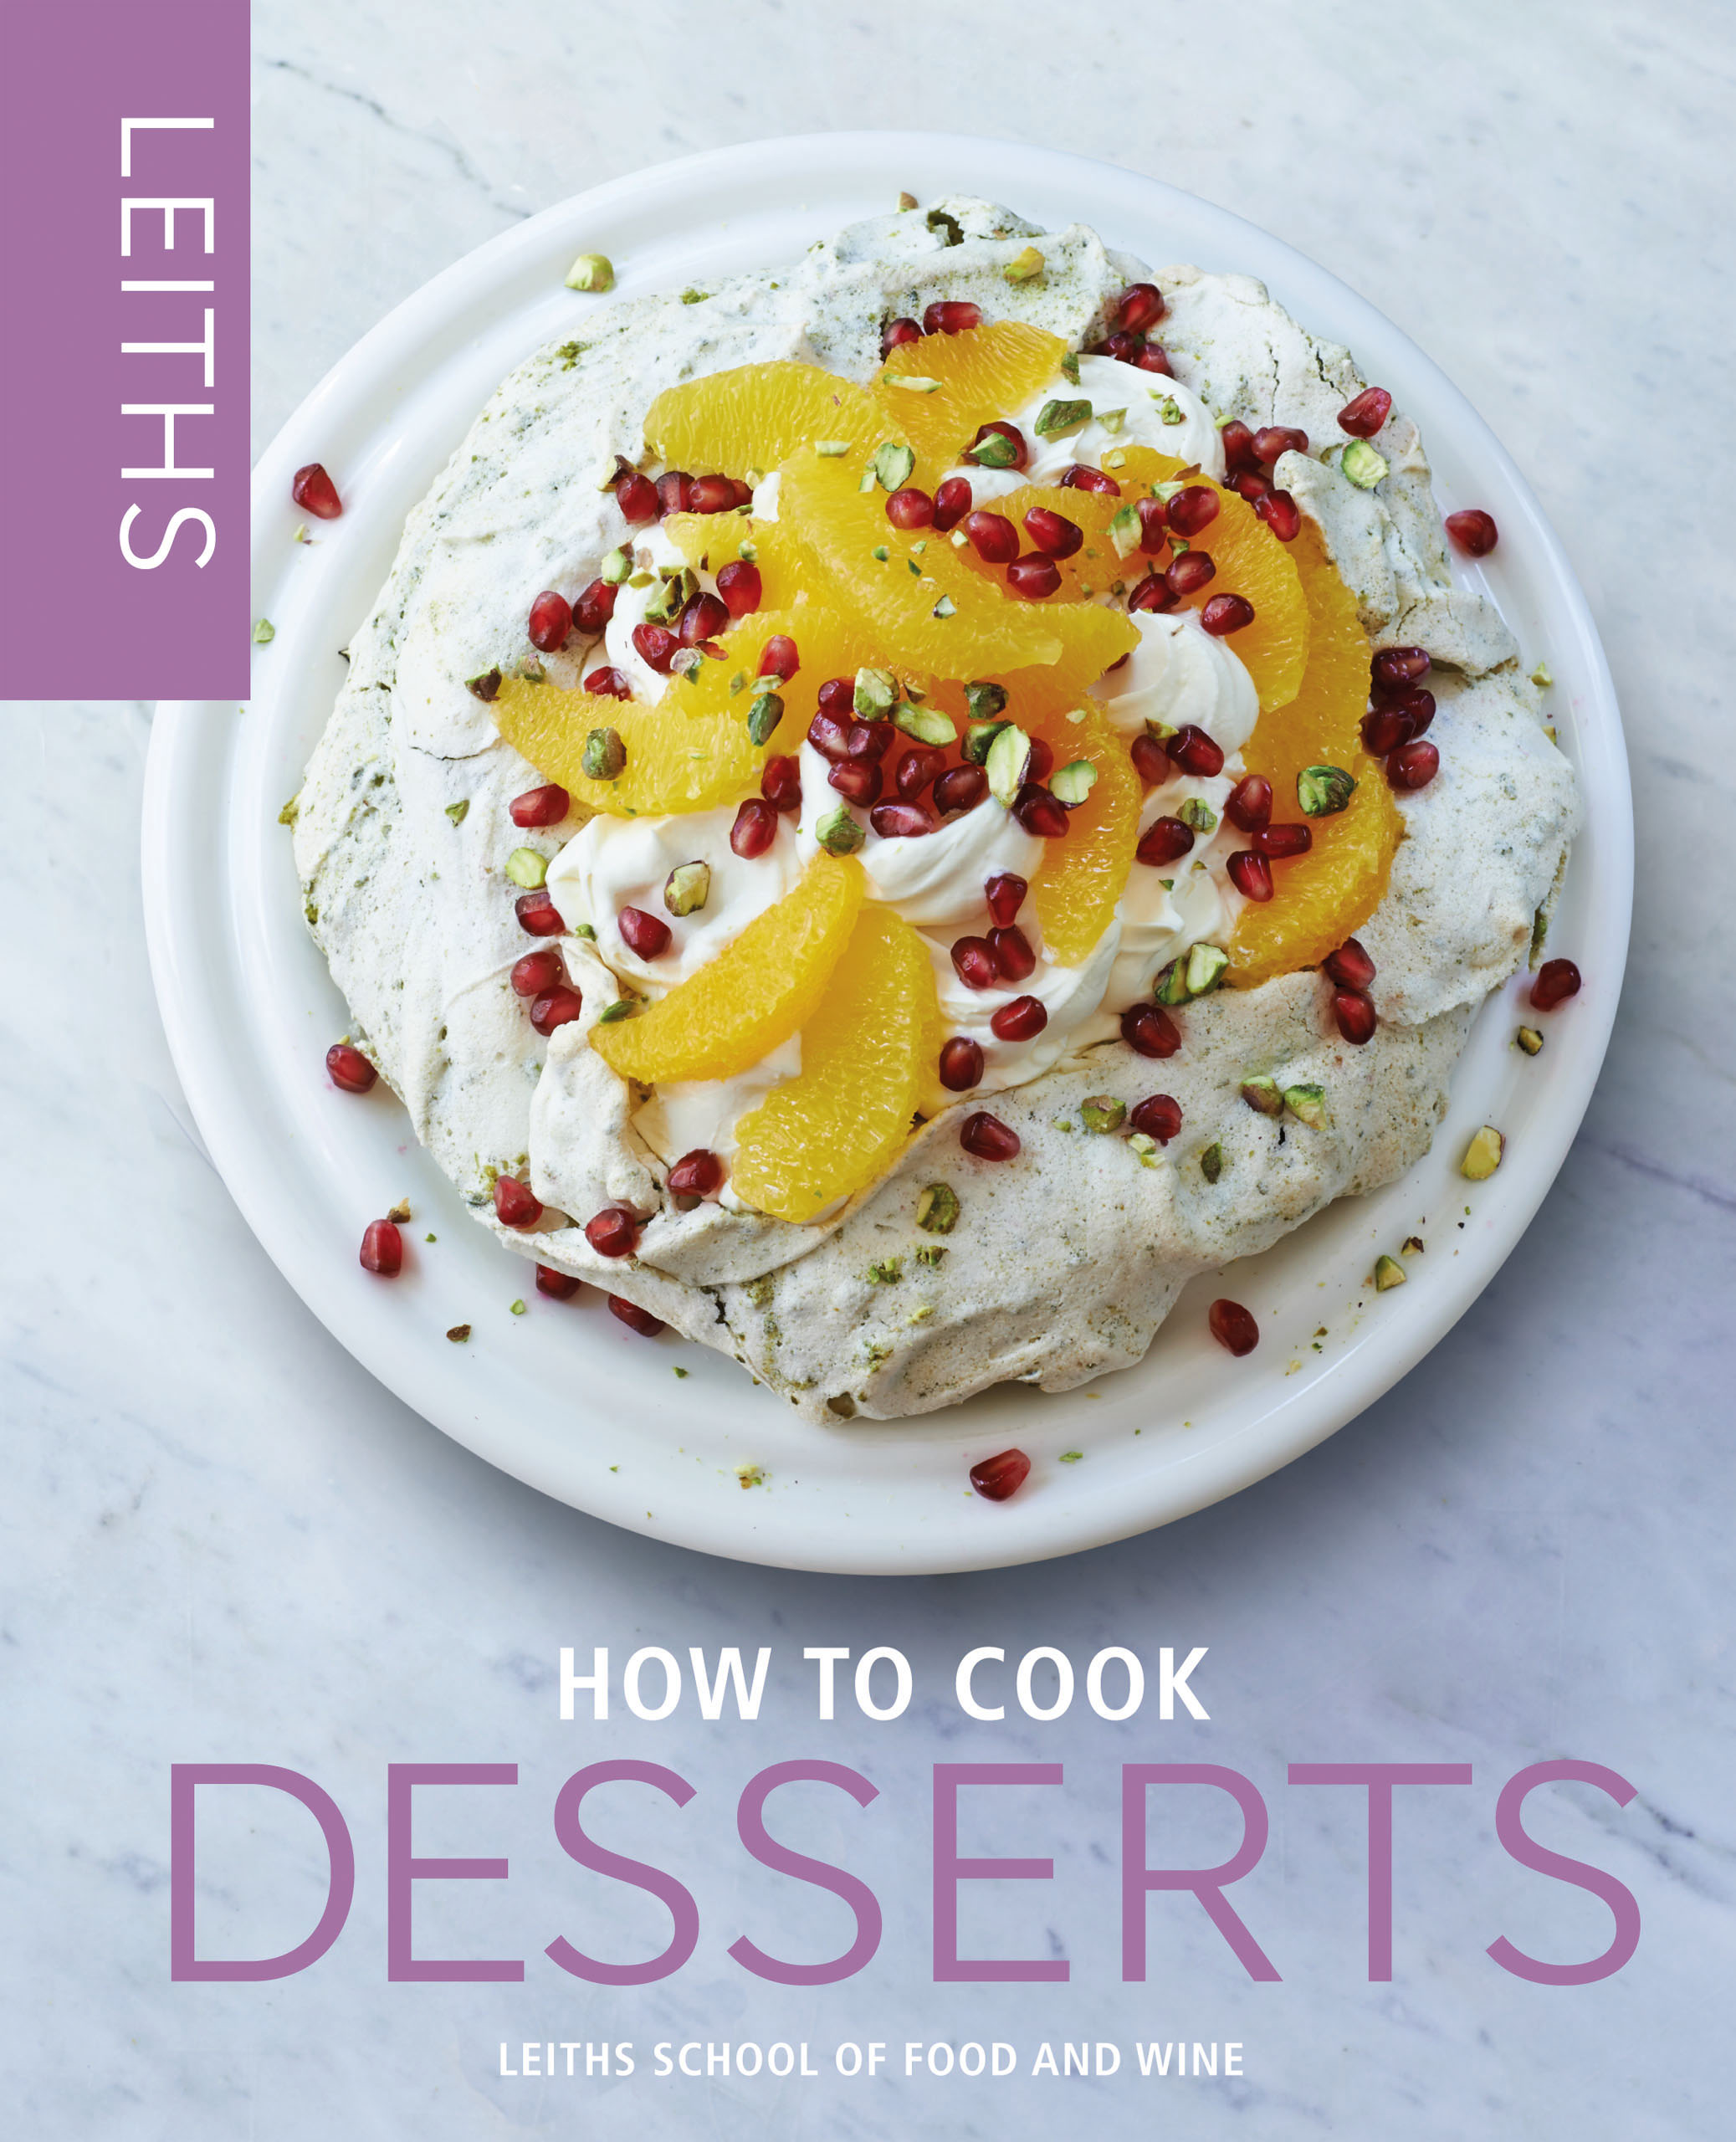 How to Cook Desserts